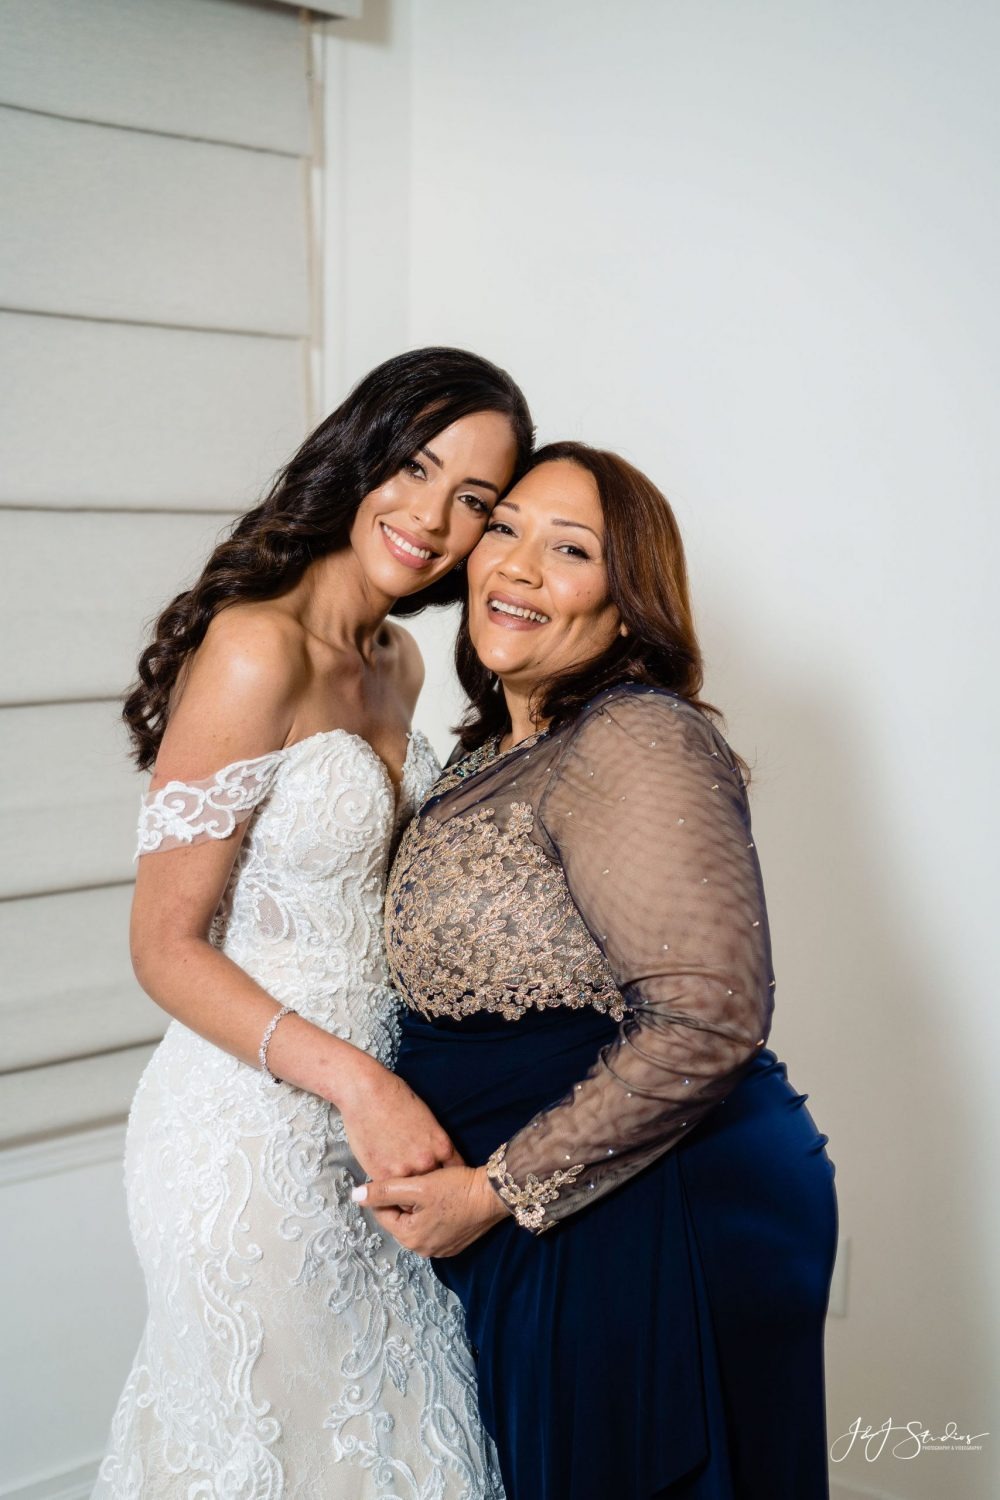 bride and mom wedding photography timeline guidelines